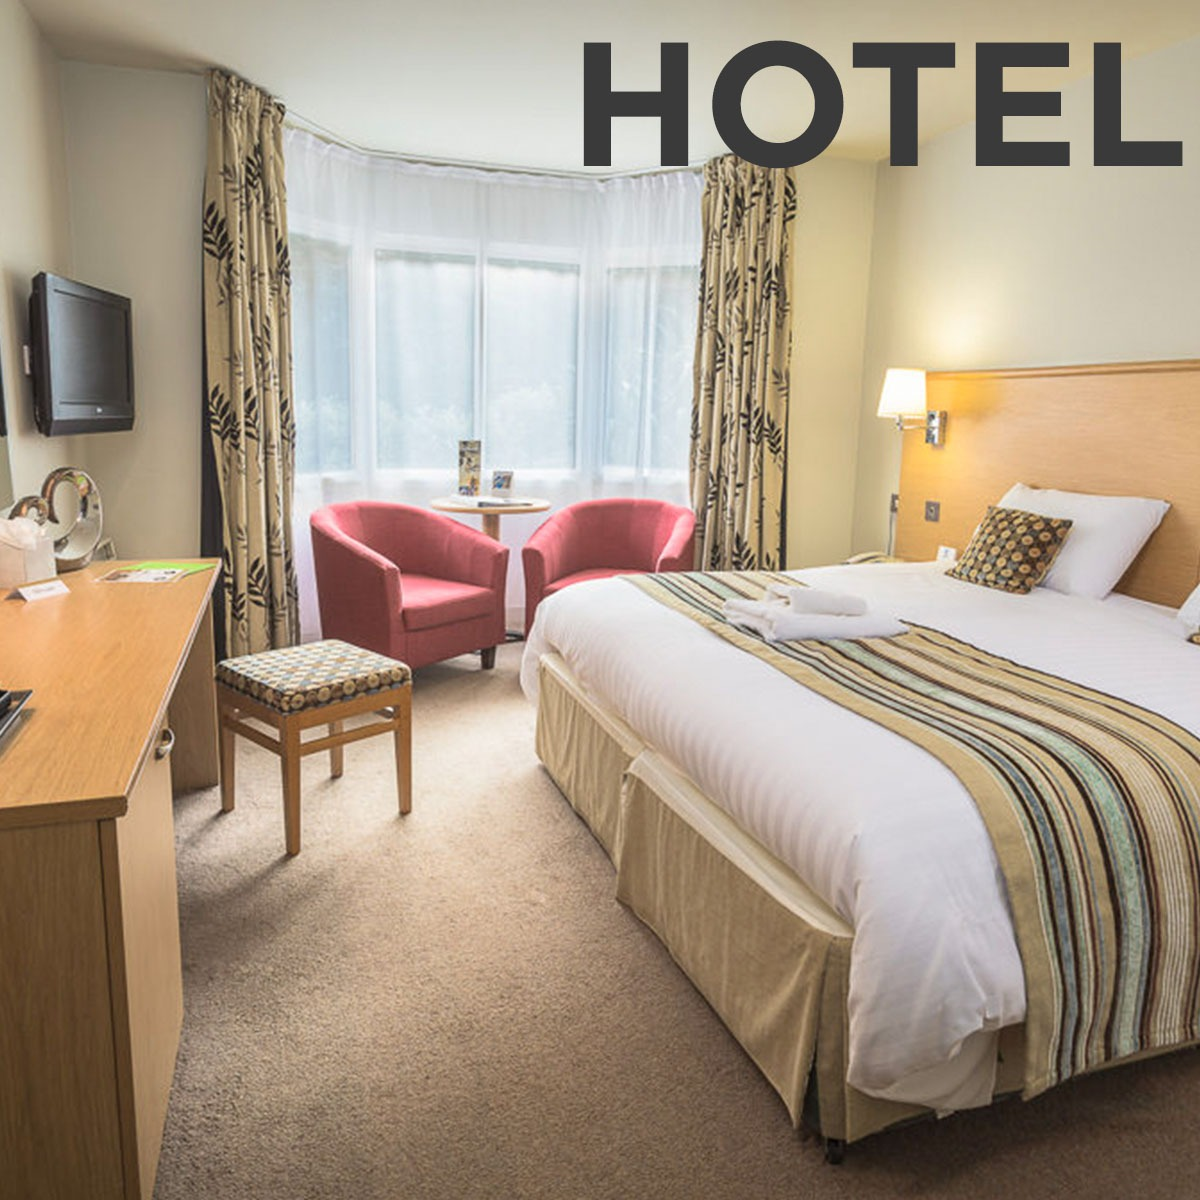 The Dartmouth Hotel rooms